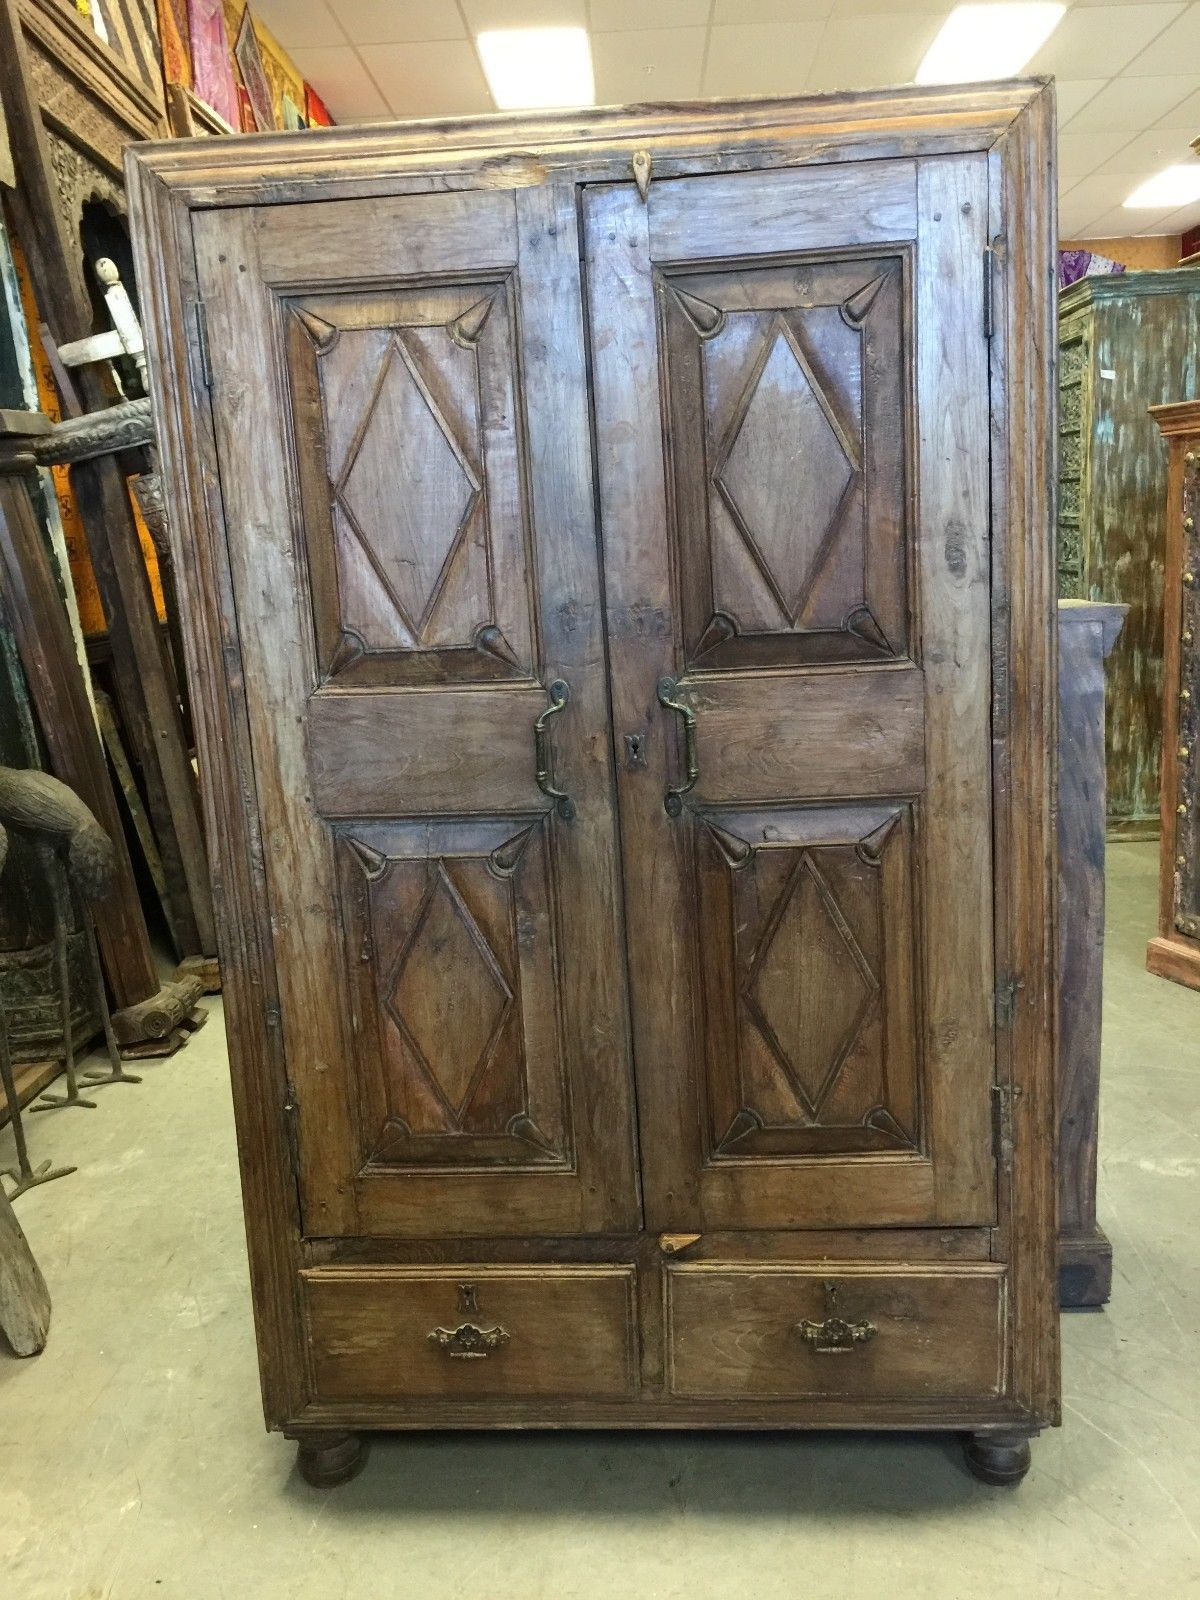 Antique Cabinet Chest Eclectic Furniture Armoire With Drawers, Spanish  Decor | EBay Http:/